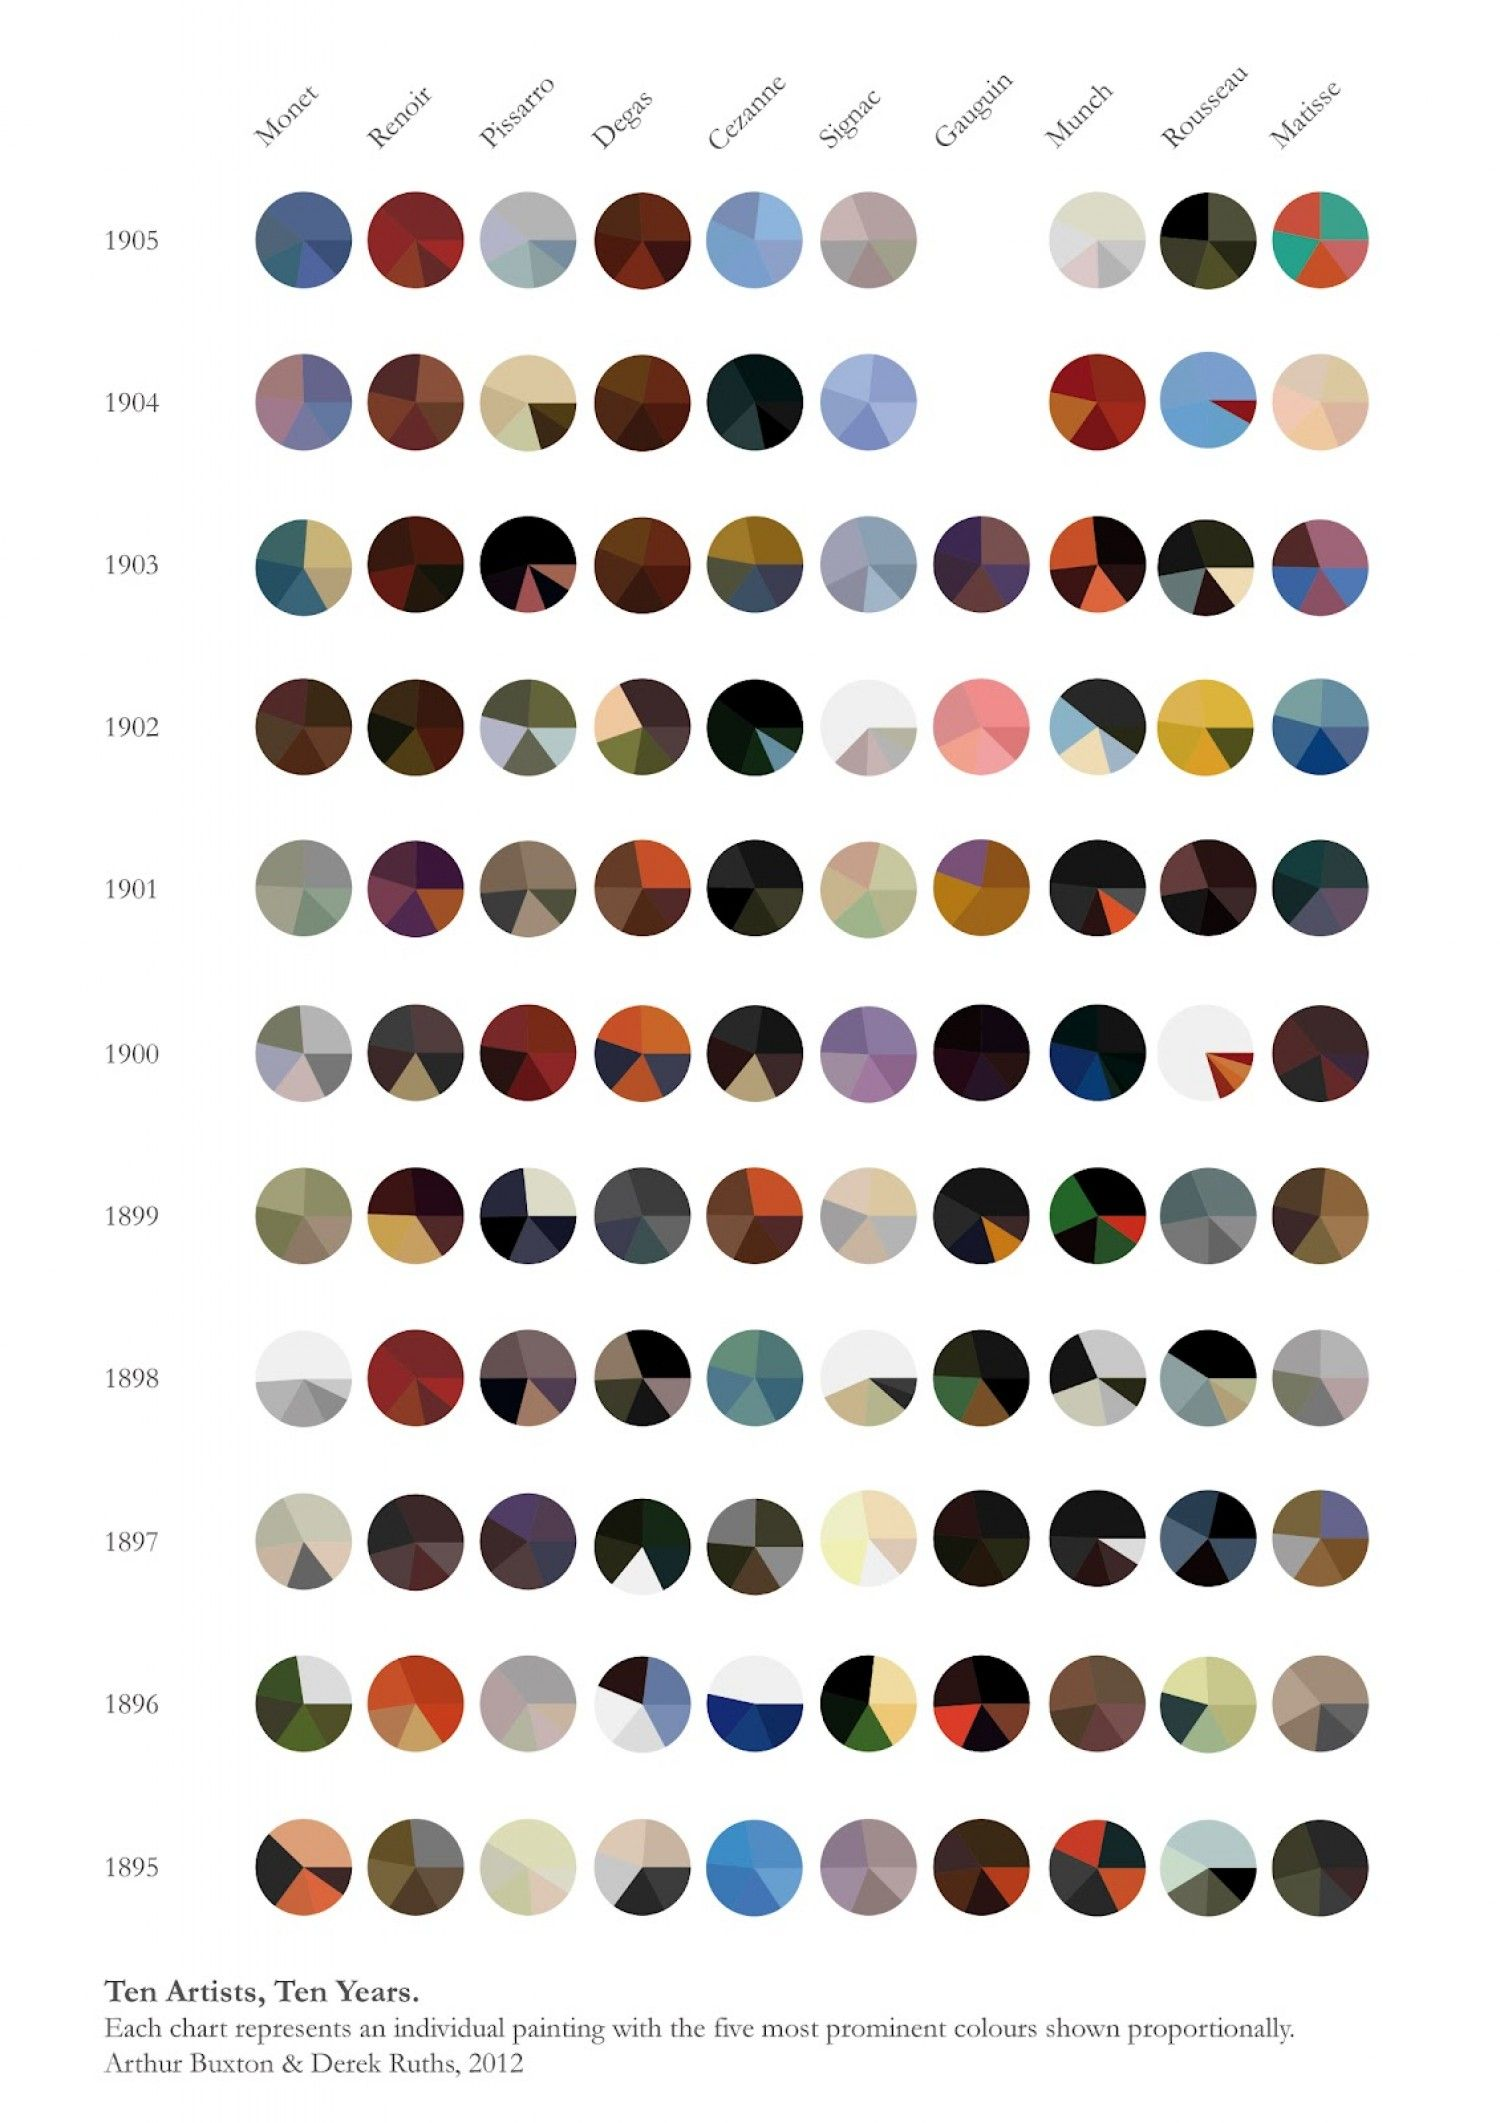 Color and art - Ten Artists Ten Years A Revolution In Color Over Ten Extraordinary Years In Art History Each Pie Chart Represents An Individual Painting With The Five